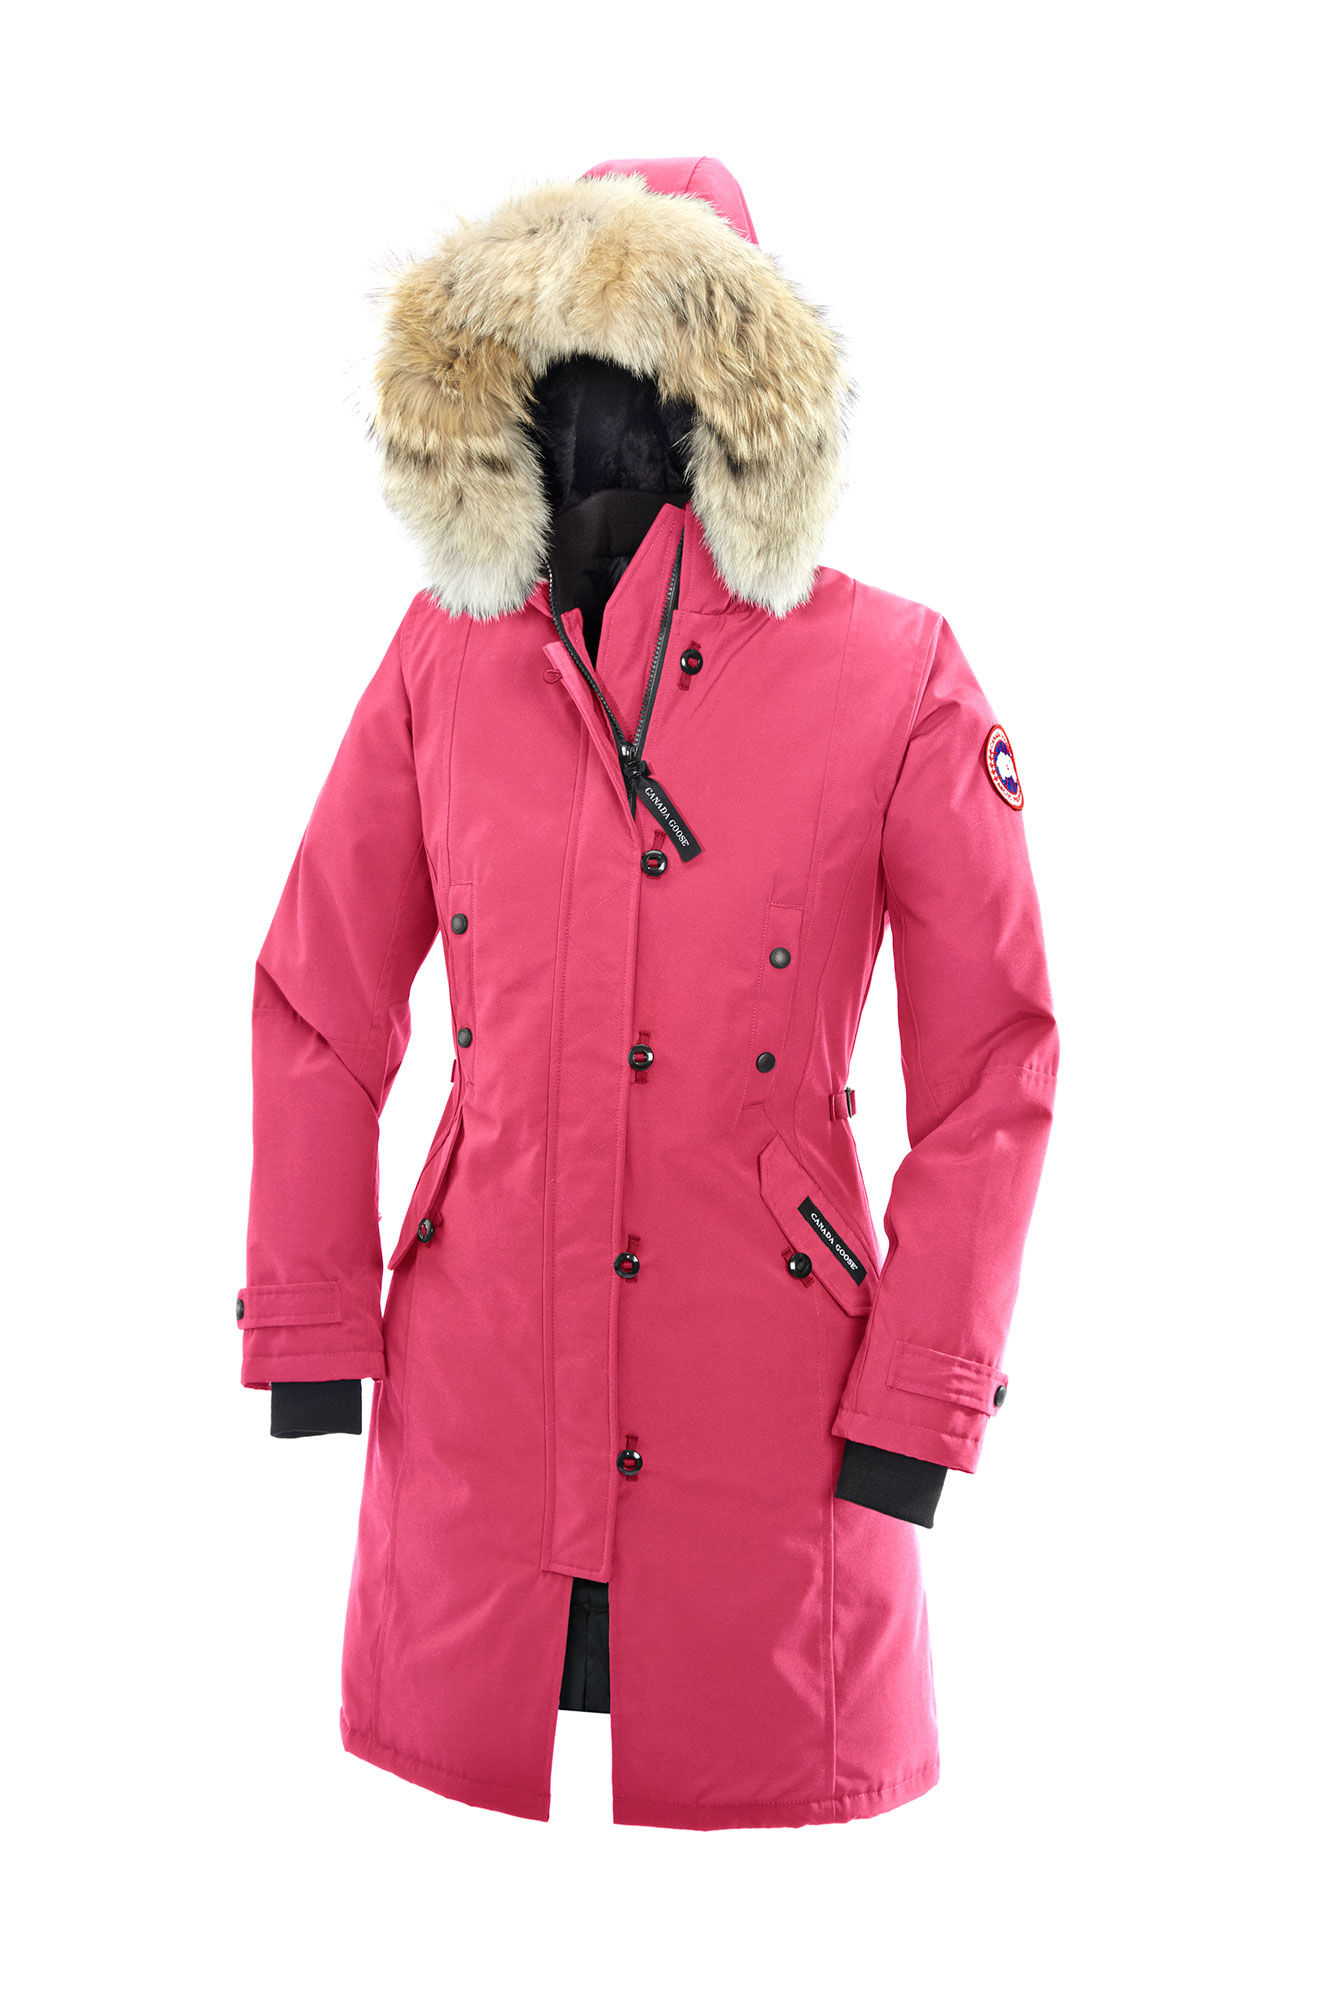 Canada Goose hats online shop - Shop Women's Canada Goose Coats from $470 | Lyst